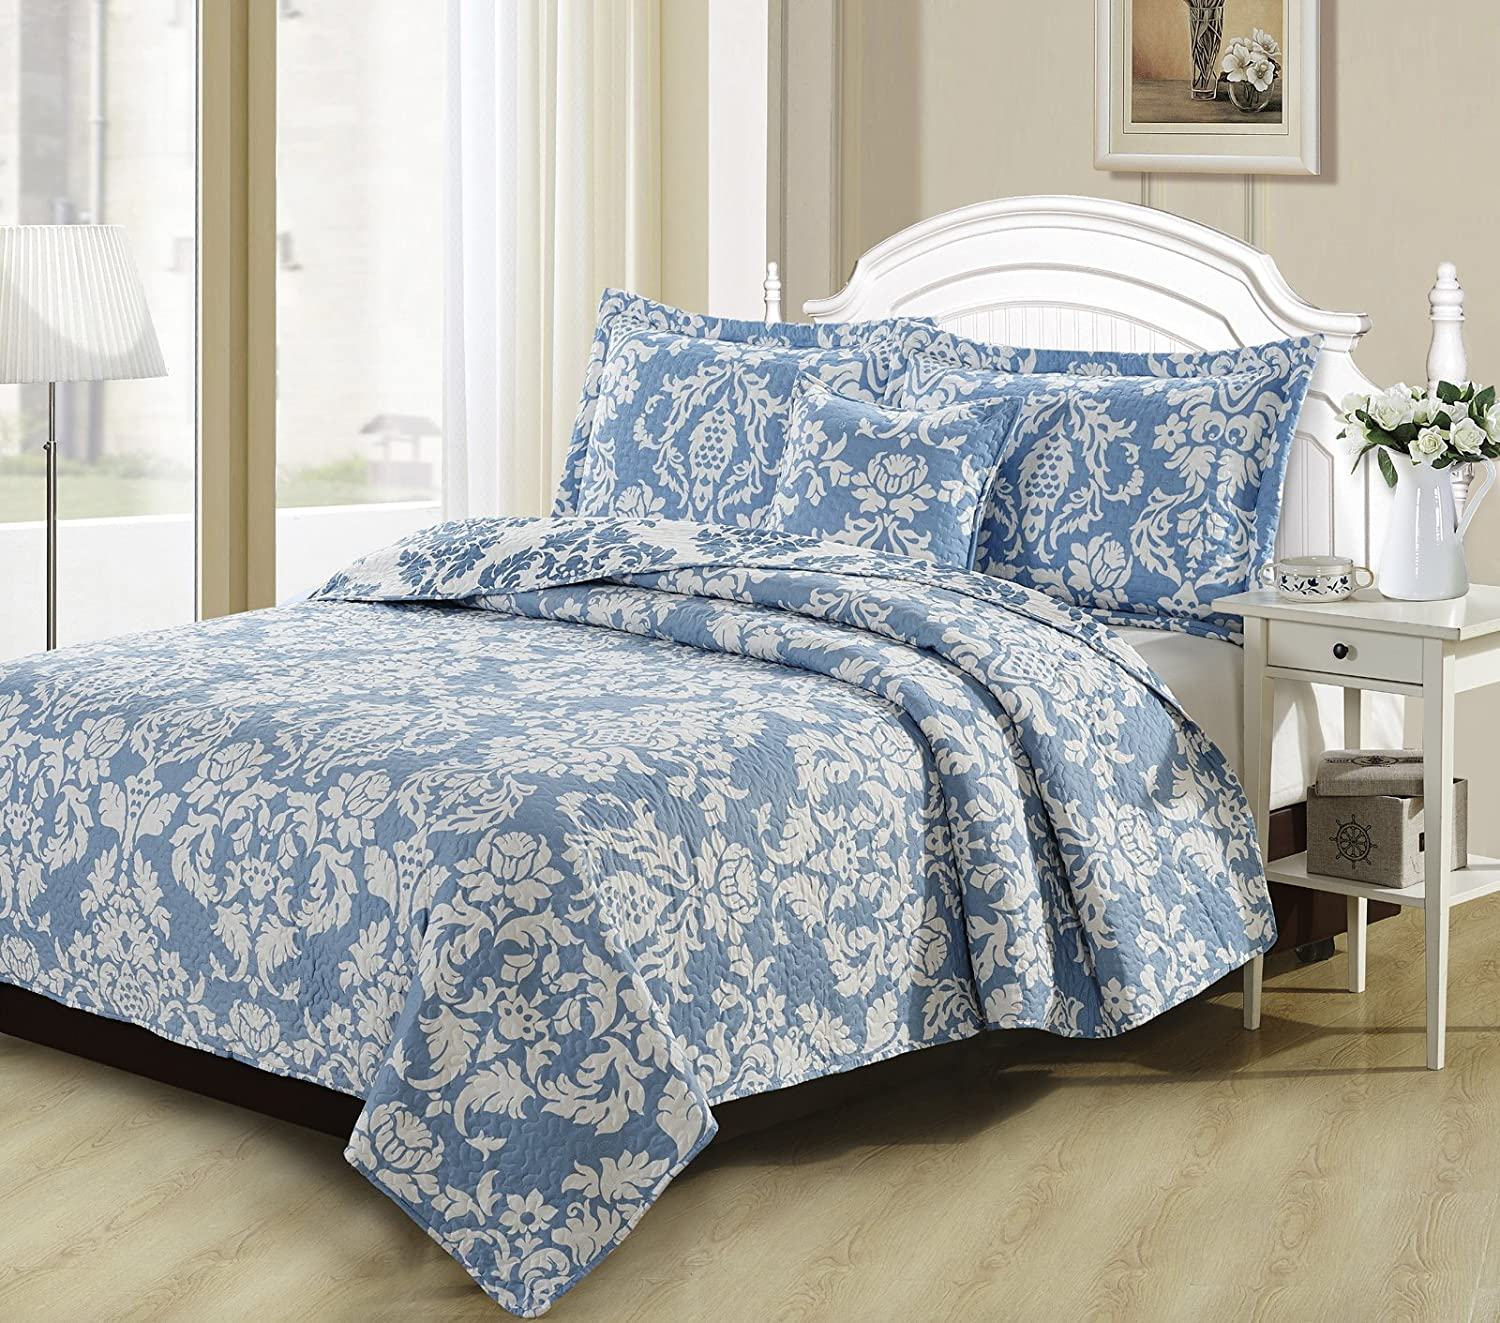 DaDa Bedding Collection Enchanted Breeze Elegant Victorian Damask Jacquard Quilted Coverlet Bedspread Set